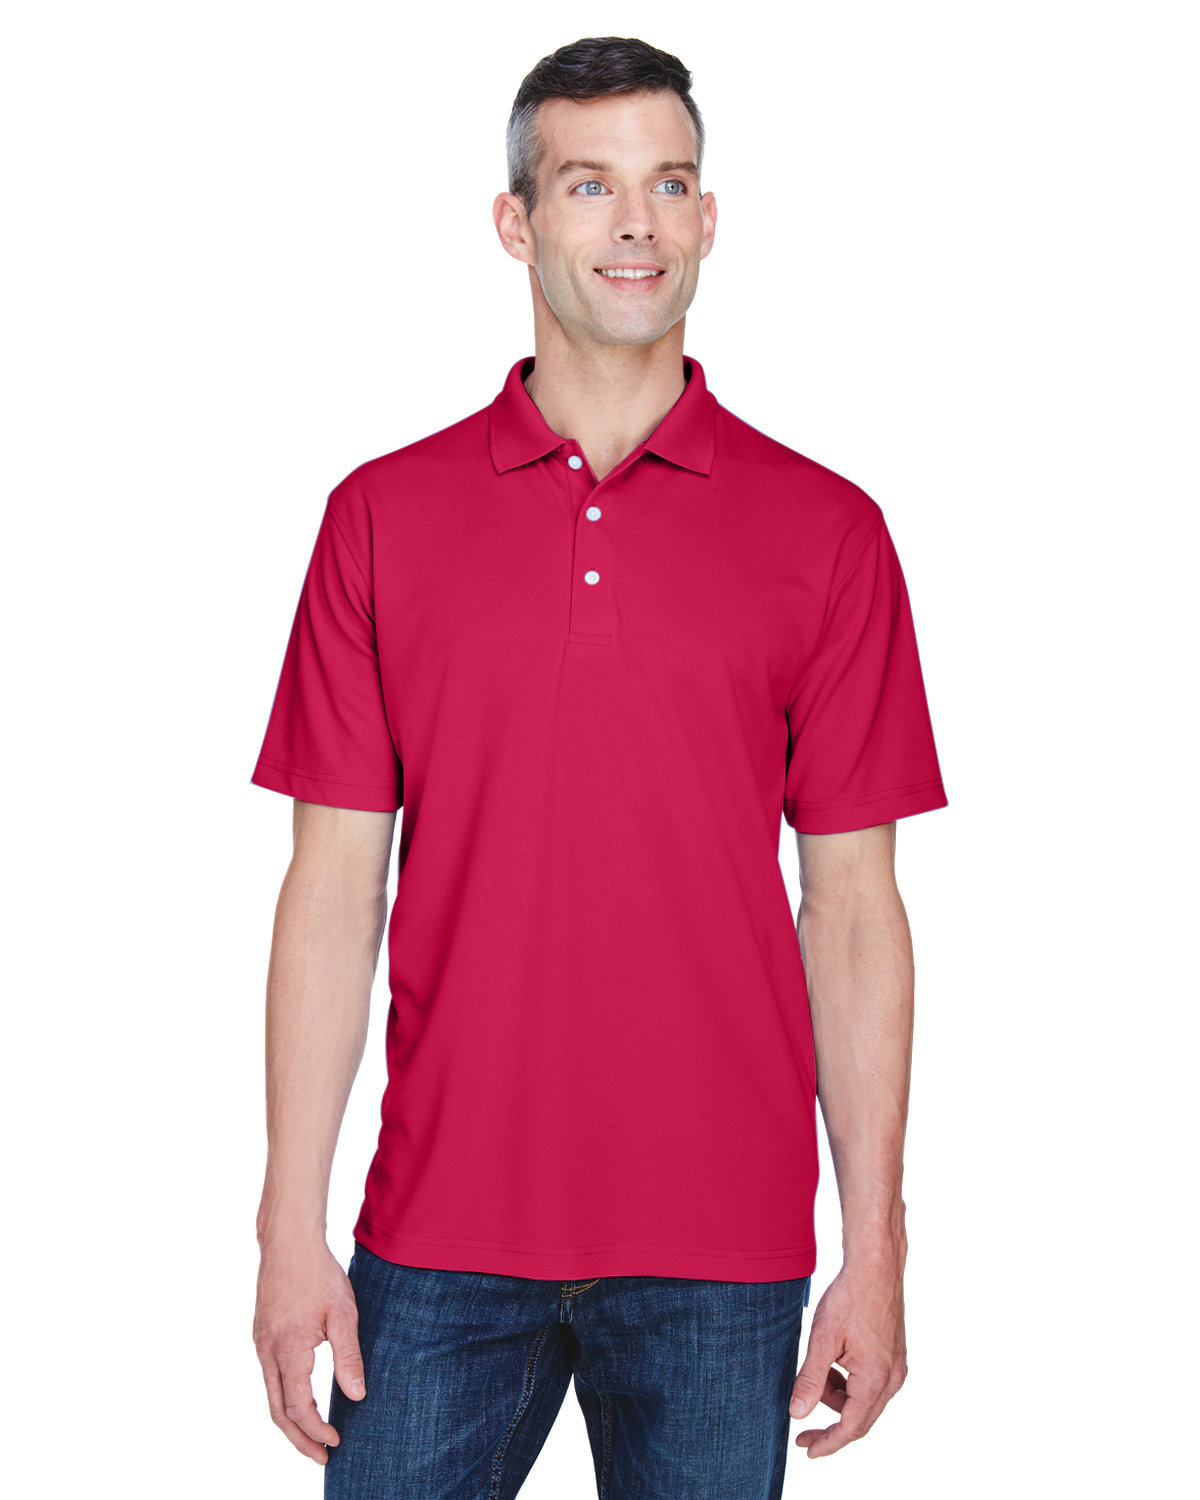 UltraClub Men's Cool & Dry Stain-Release Performance Polo CARDINAL